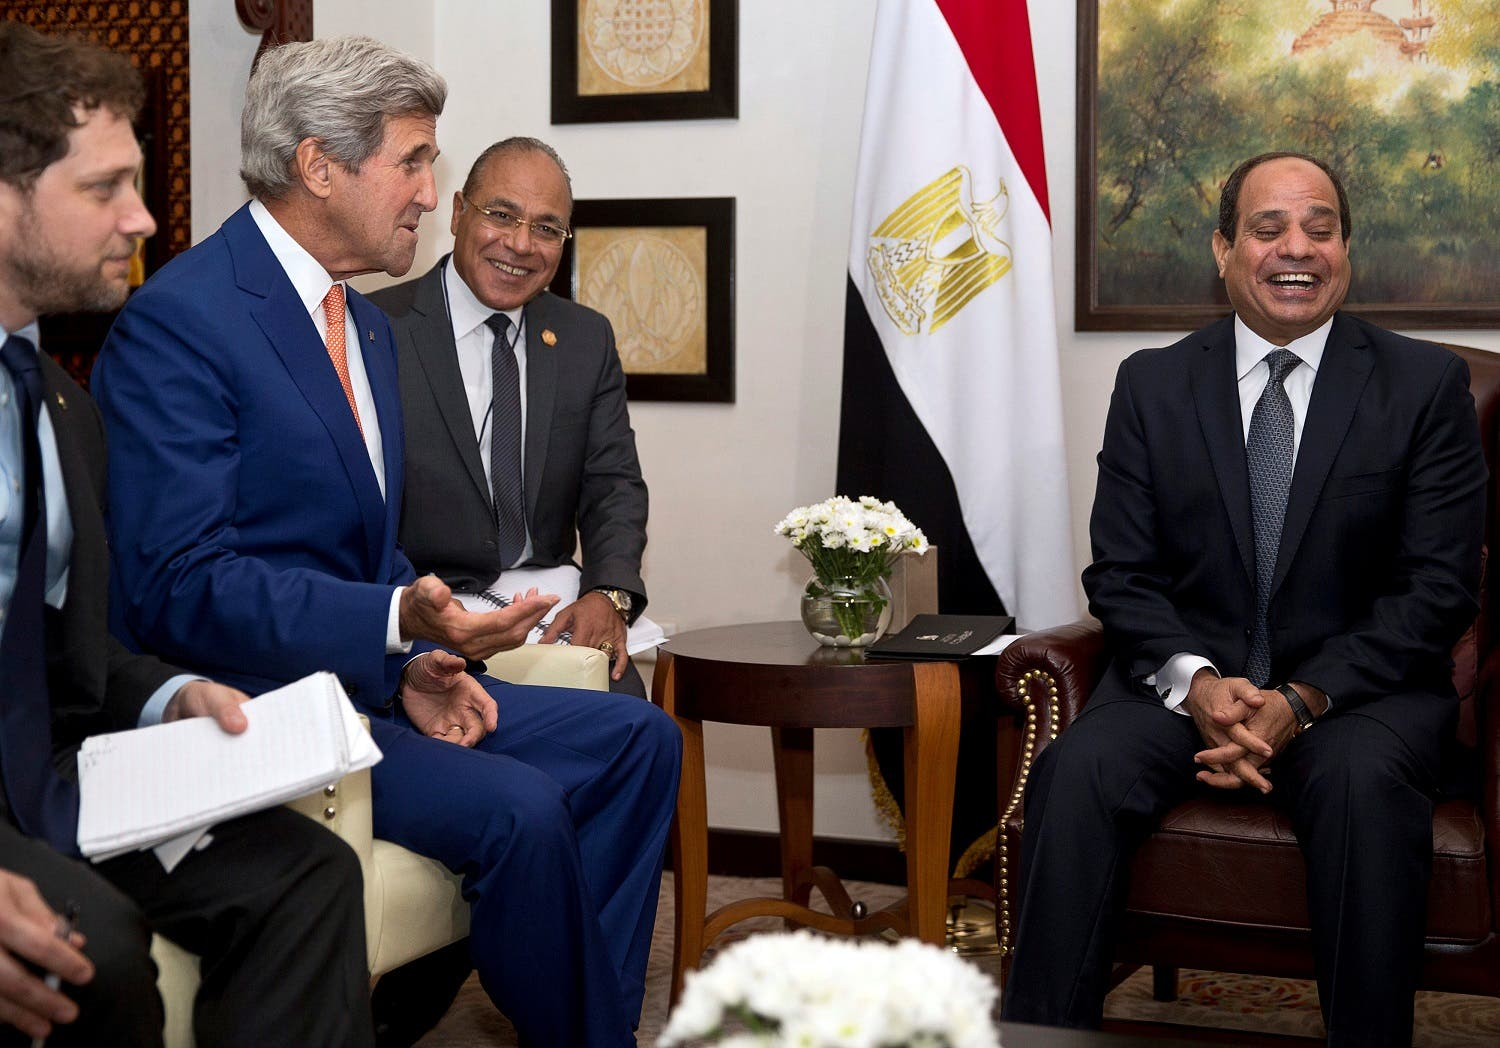 US Secretary of State John Kerry (2nd L) meets Egypt's President Abdel Fattah al-Sisi in New Delhi. (Reuters)